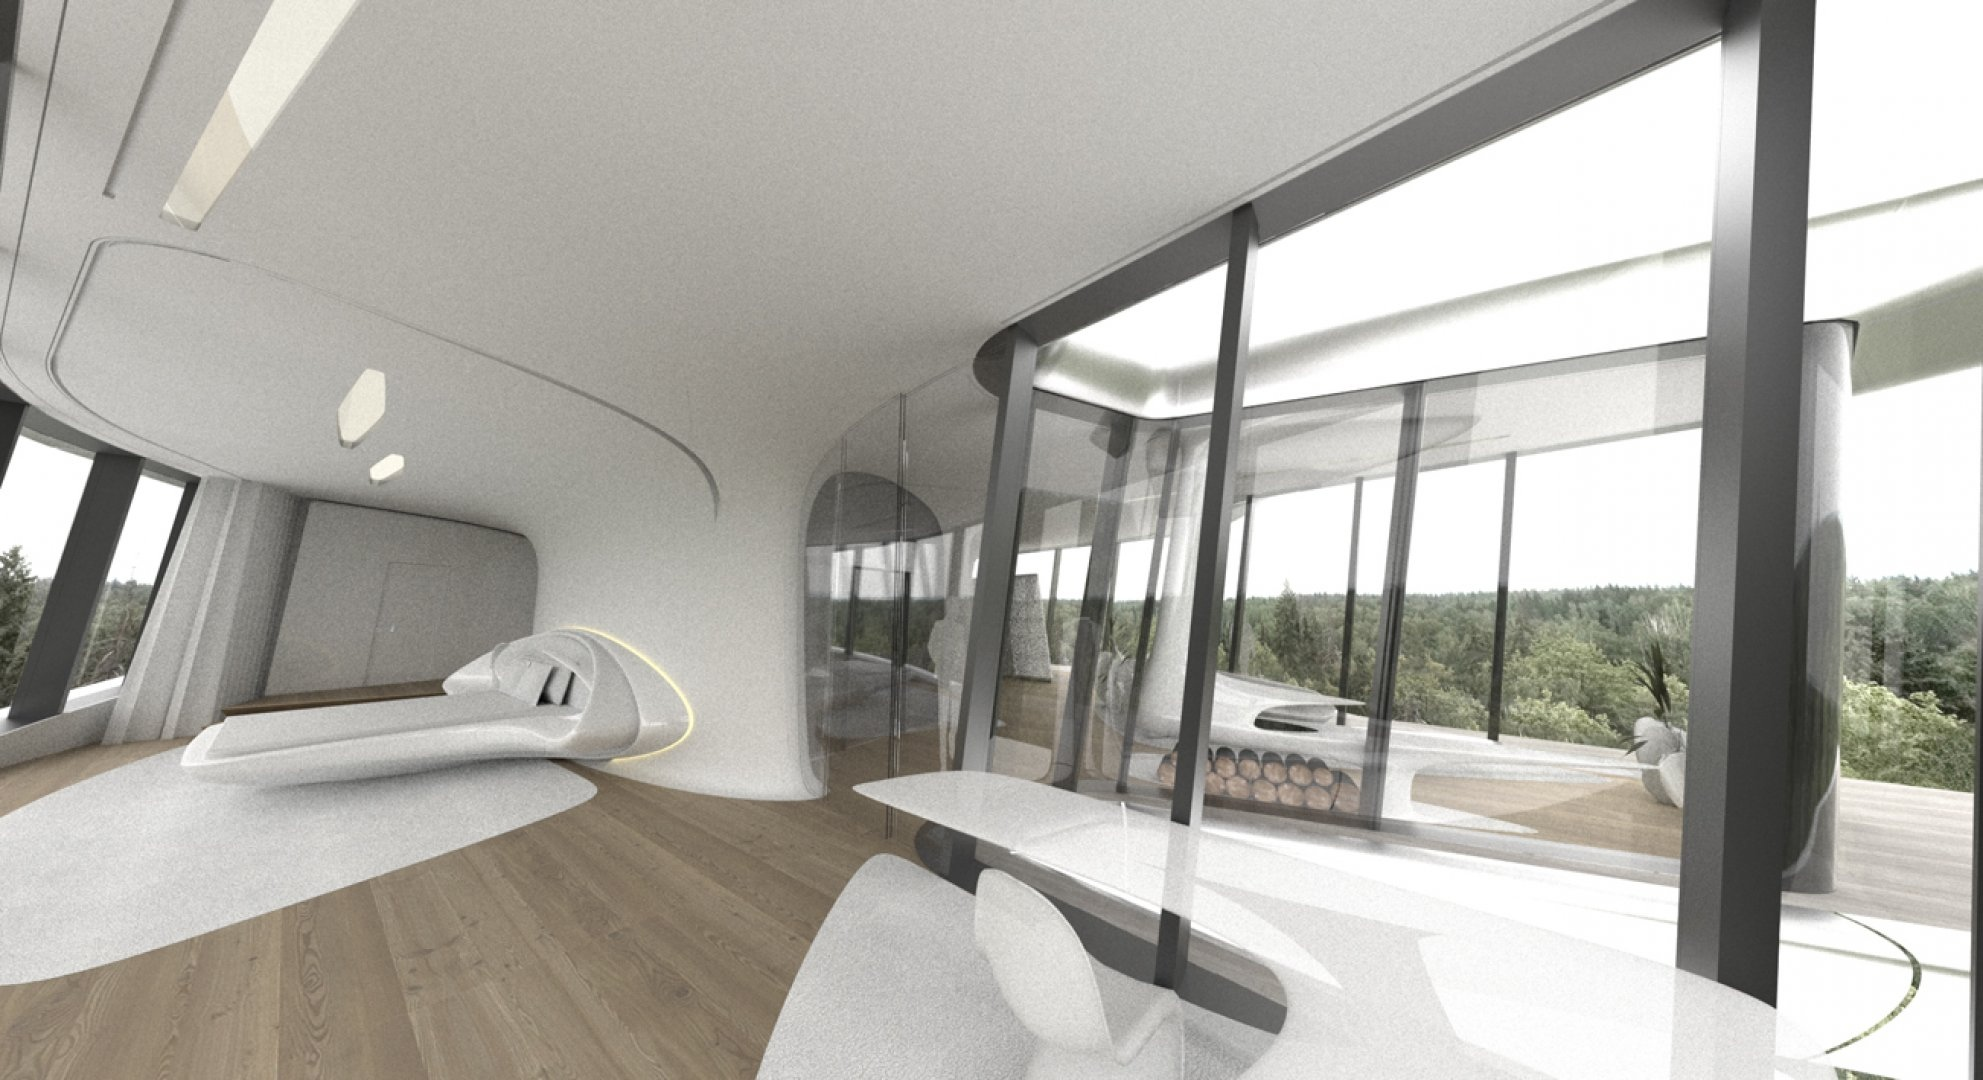 Space age bedroom design interior design ideas for Home bedroom image